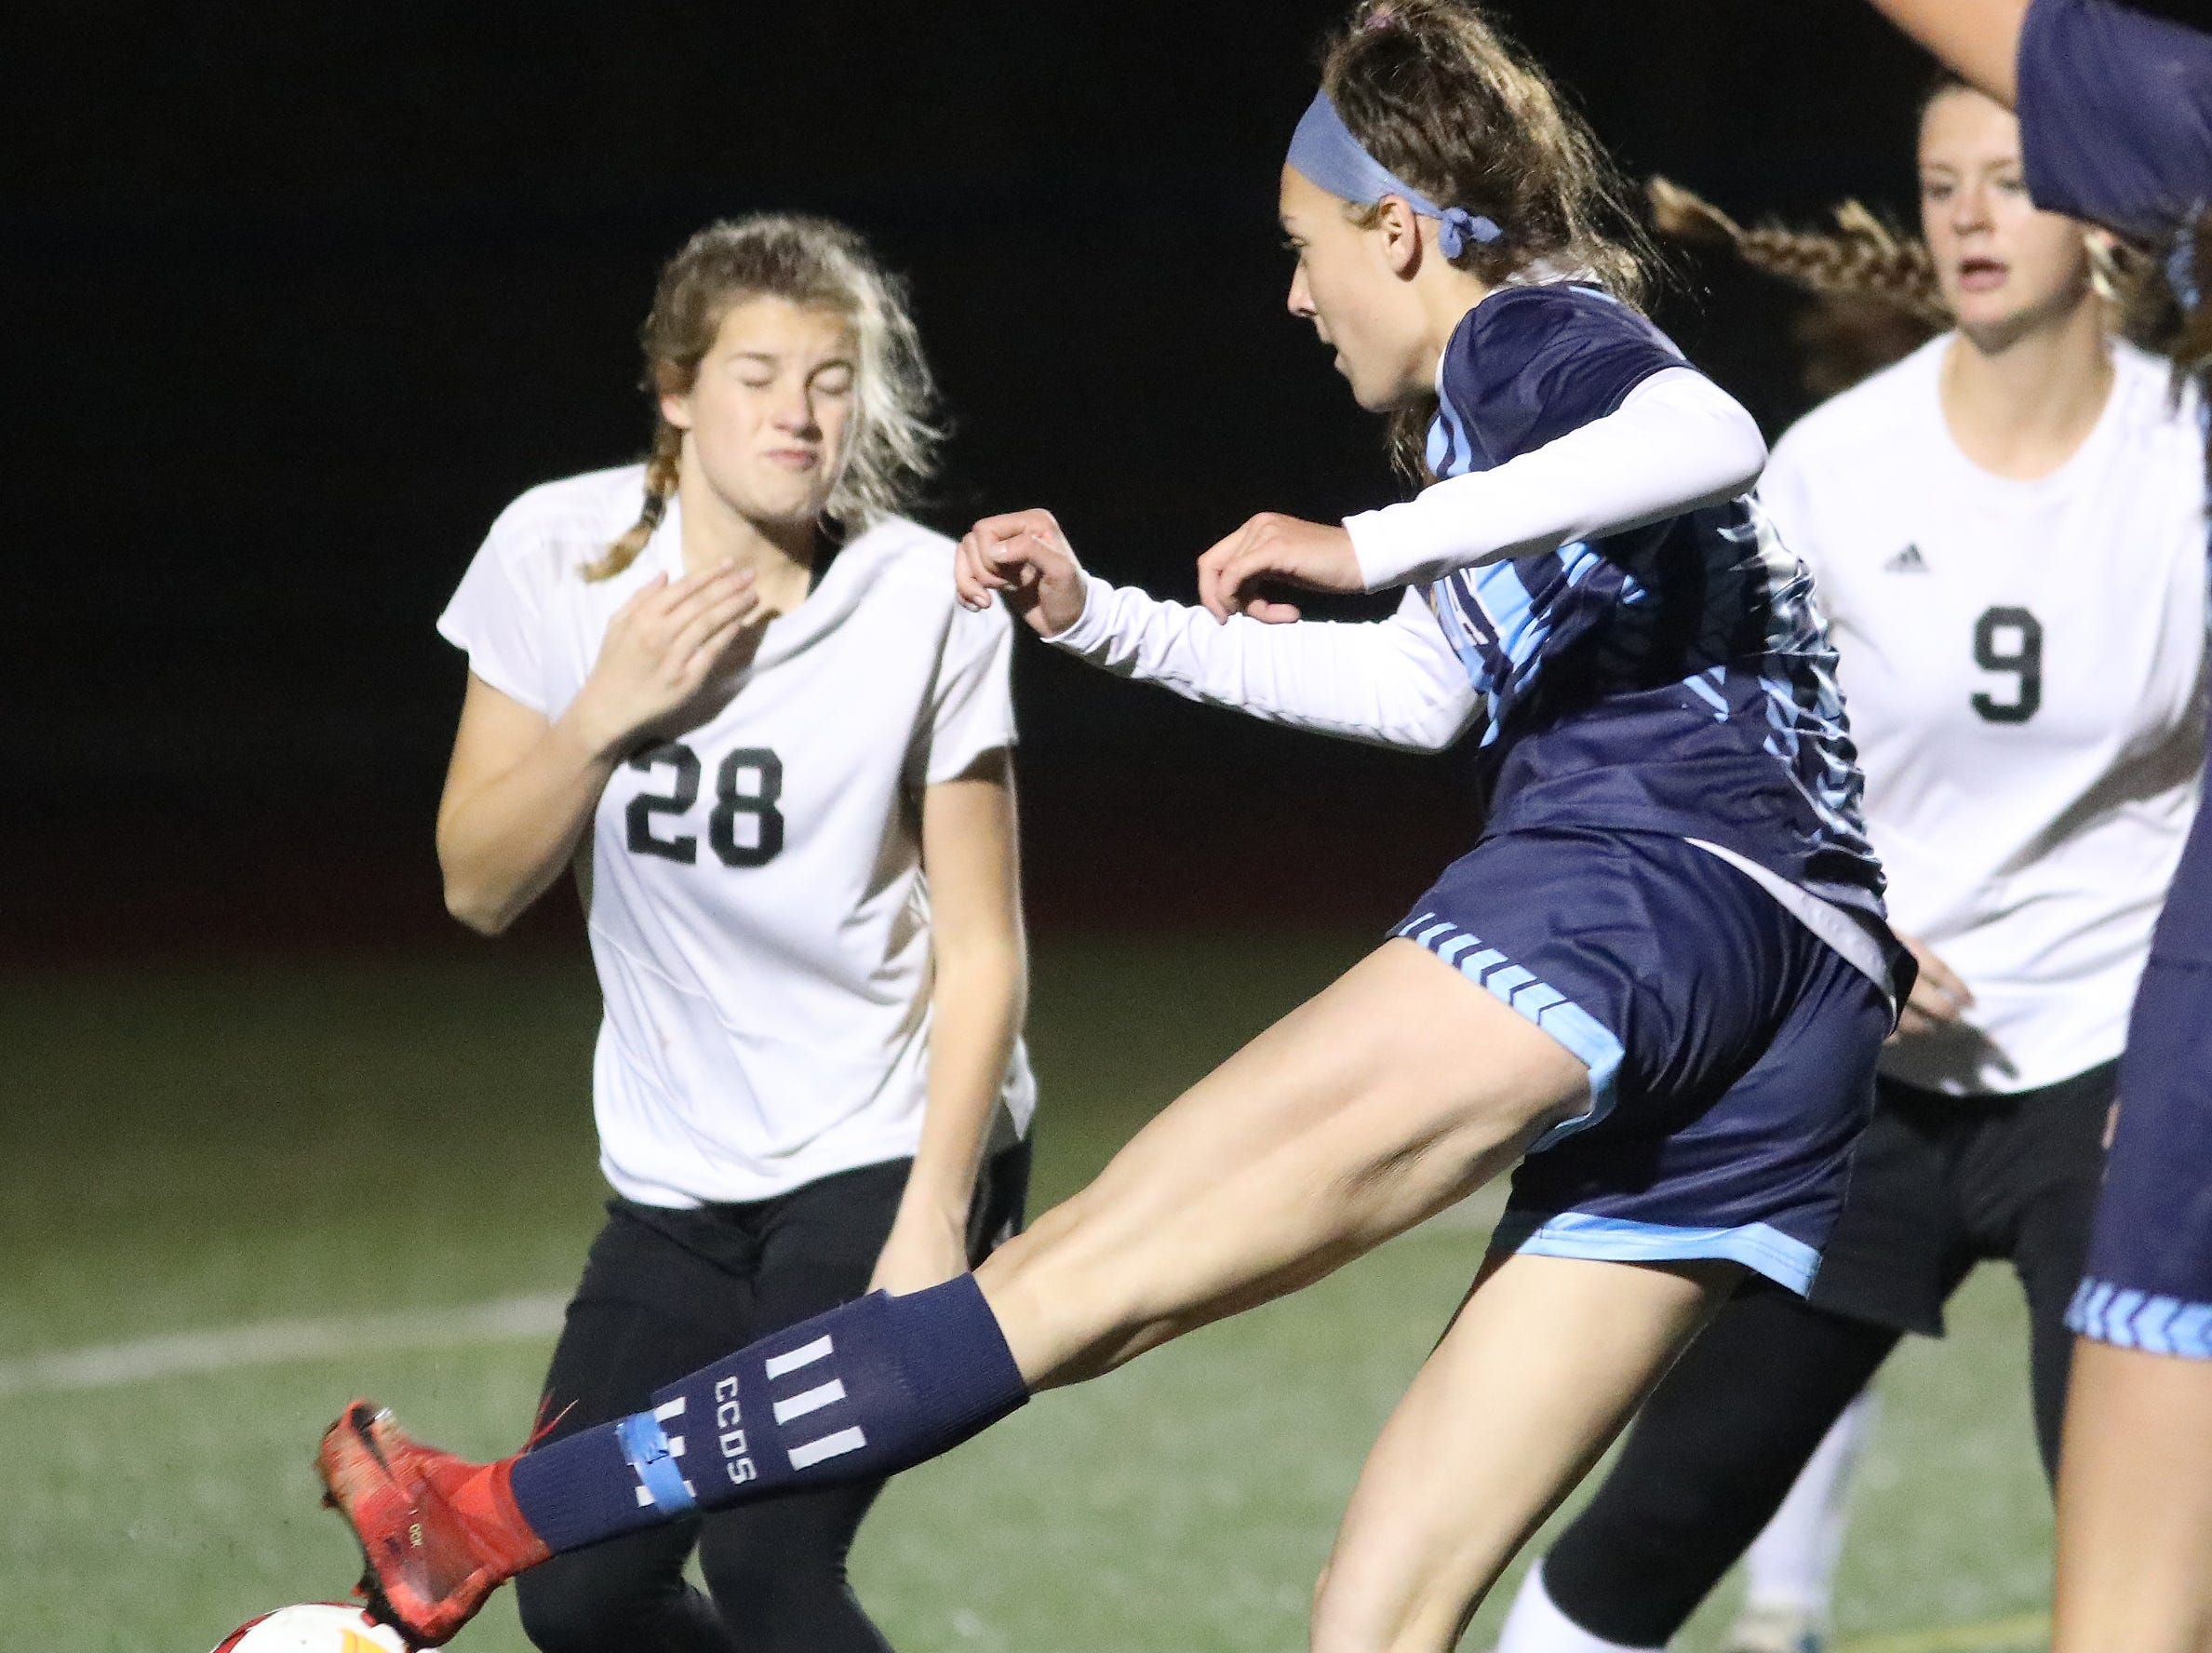 Cincinnati Country Day player Kate Brock (10) kicks the ball  during their tournament game against Preble Shawnee , Saturday, Oct. 27,2018.